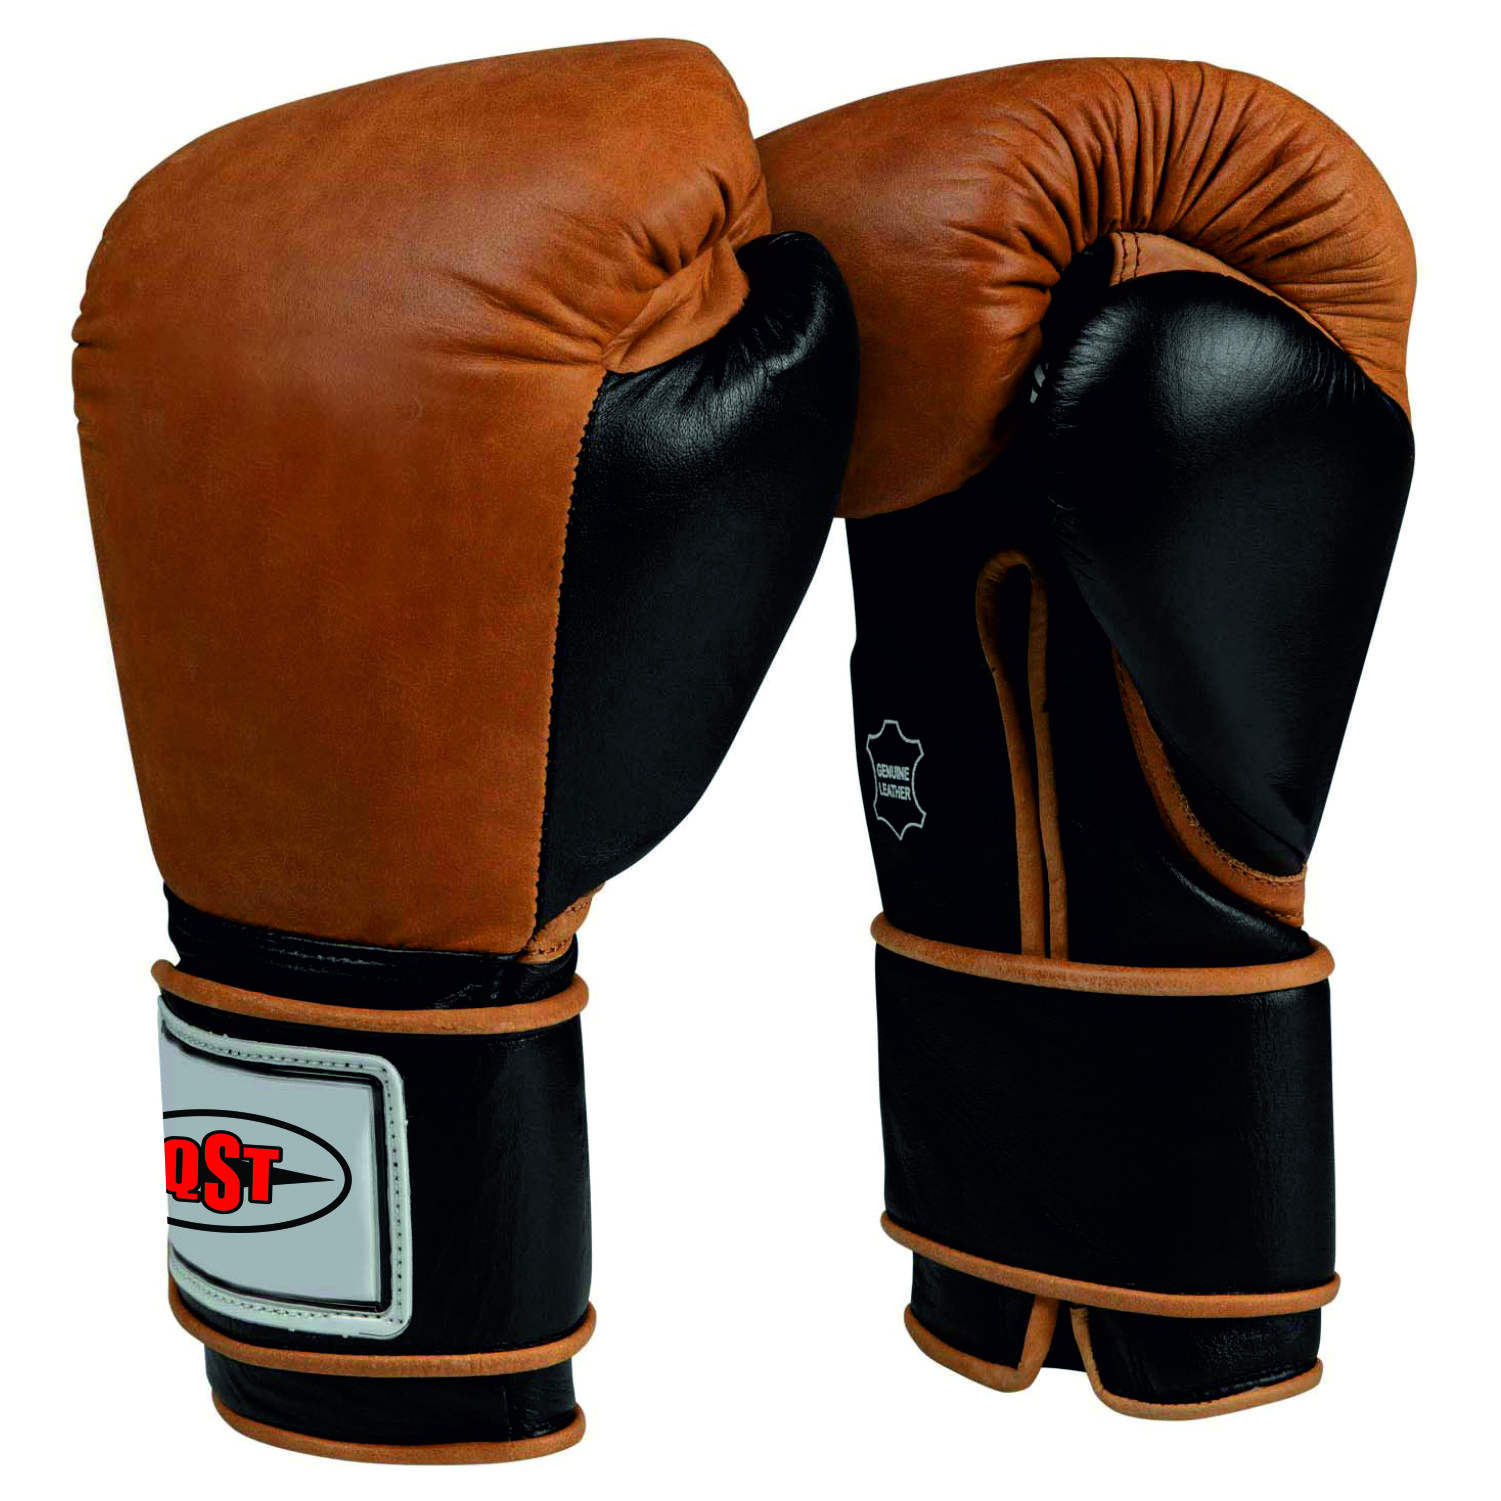 Impact boxing gloves